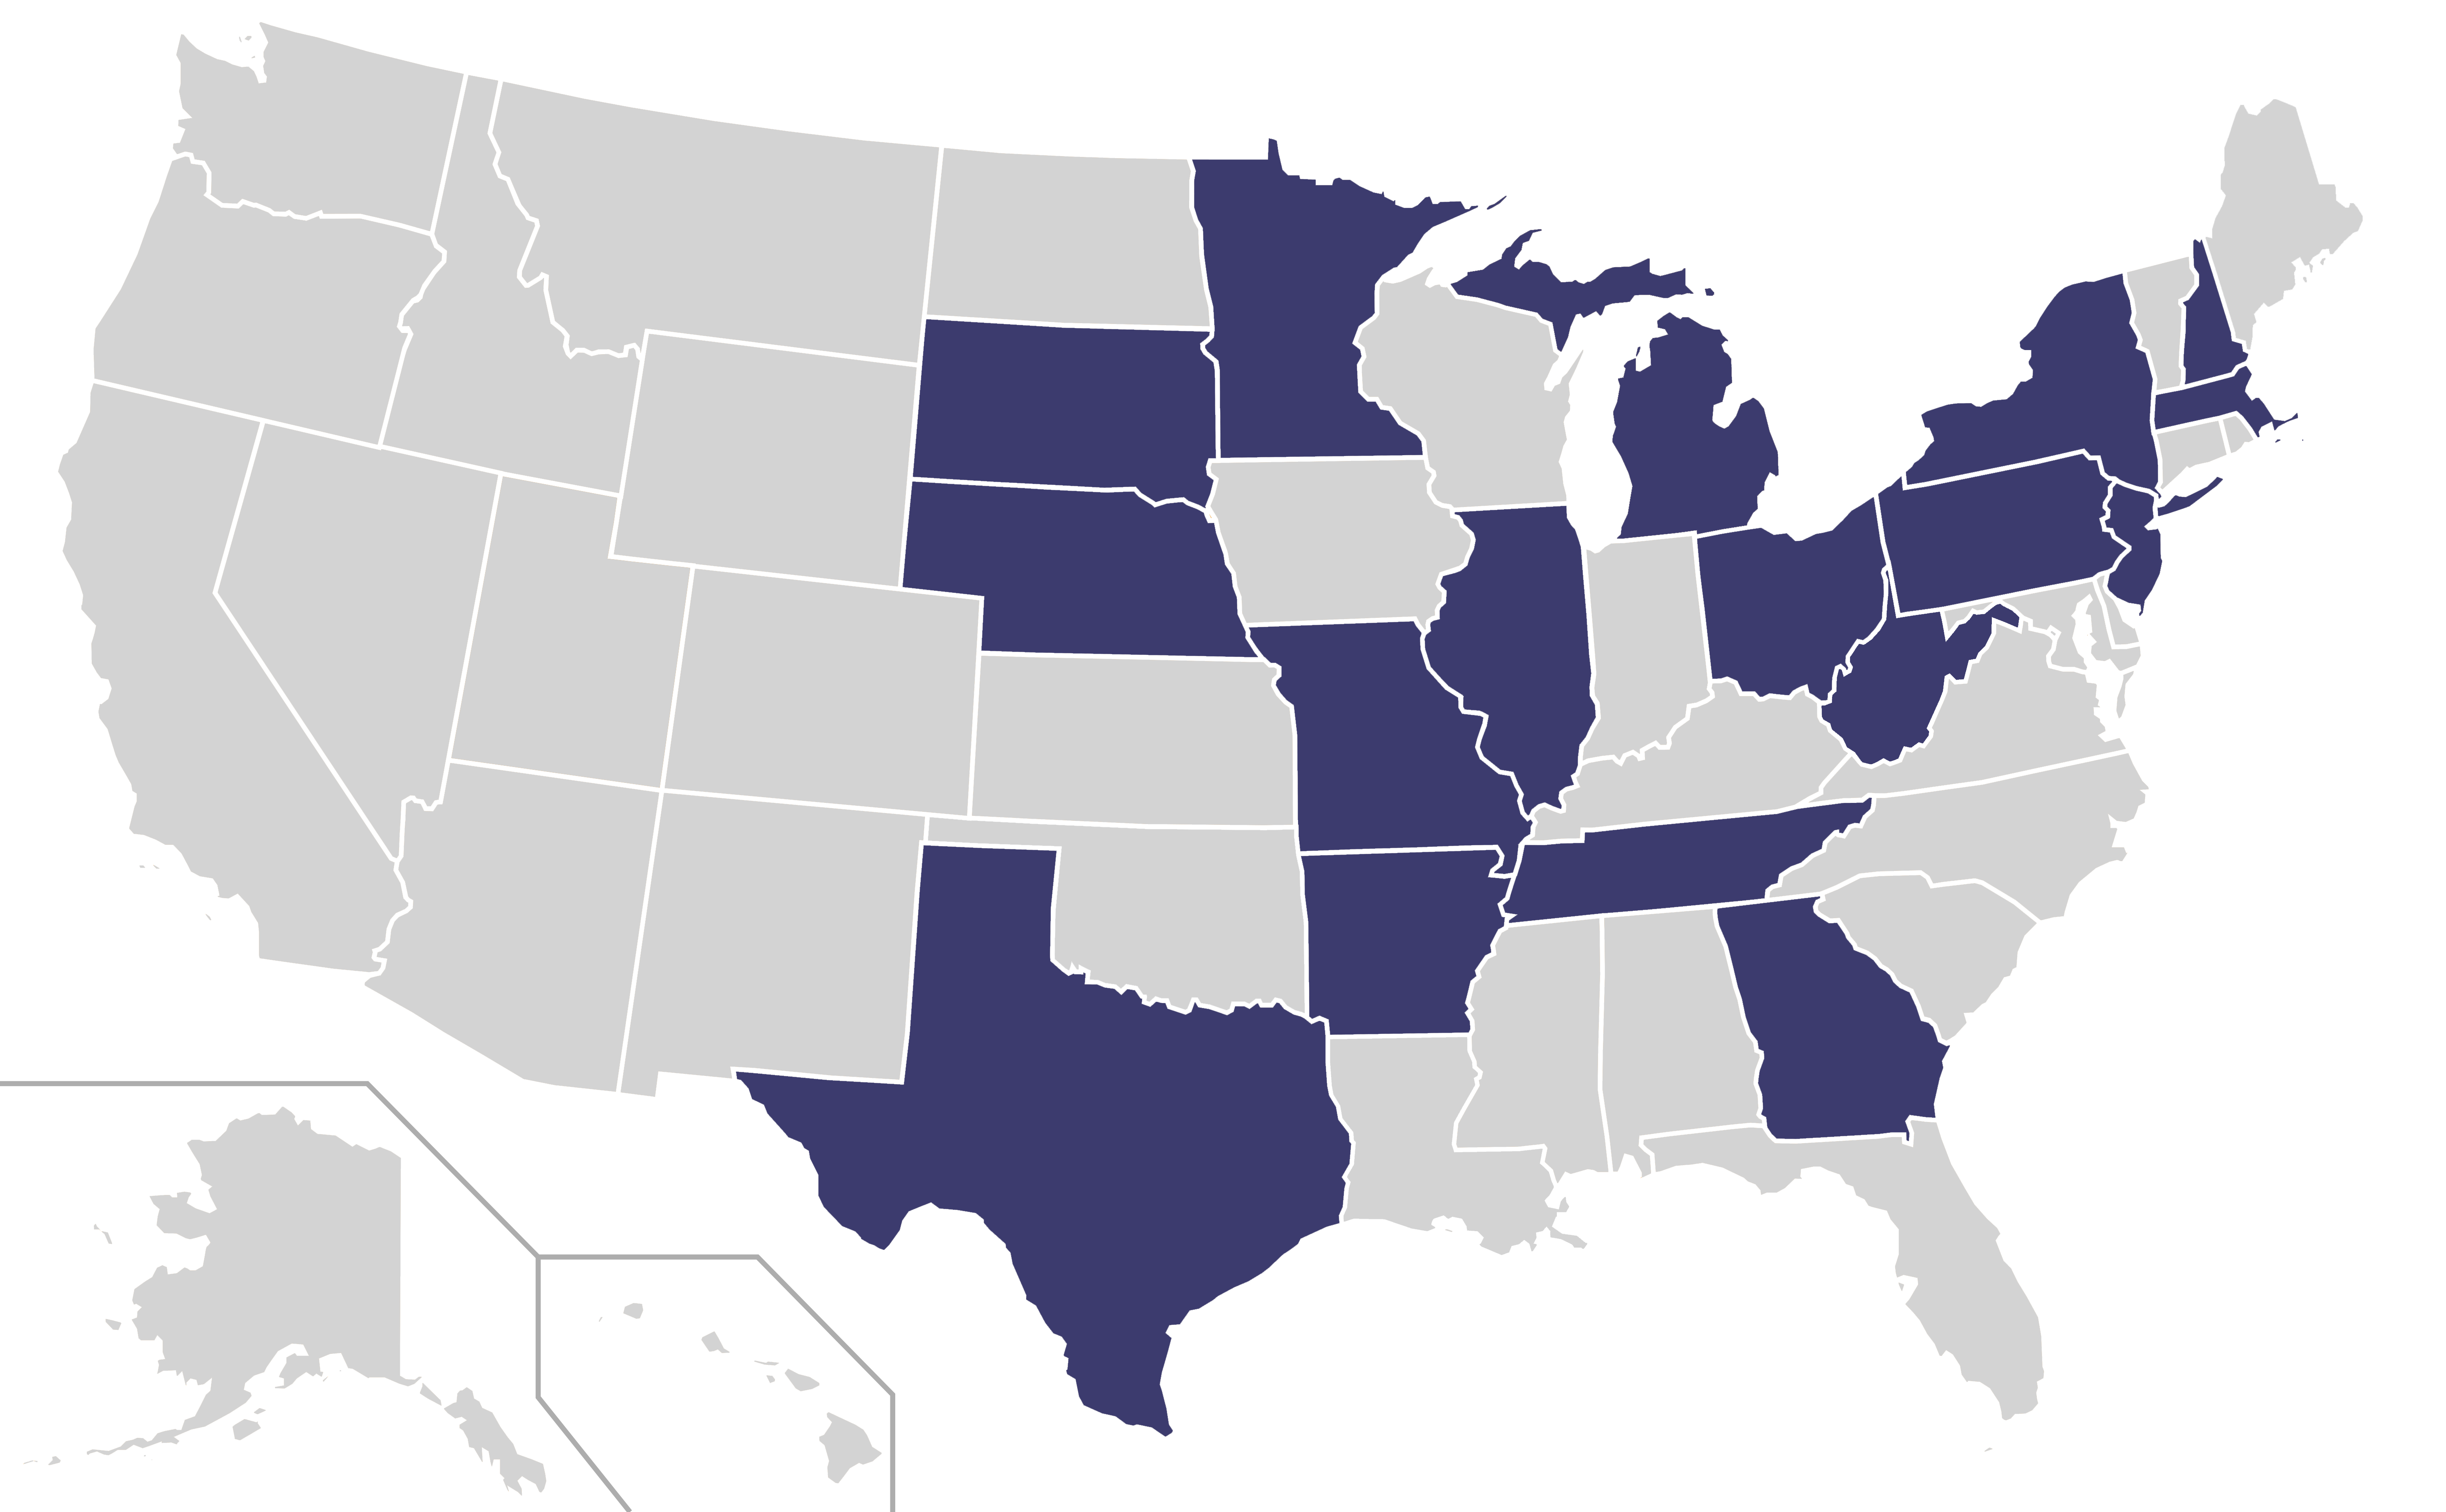 File:Home States of Democratic Party Presidential Nominees Locator Map  (United States of America - Nominees PNG